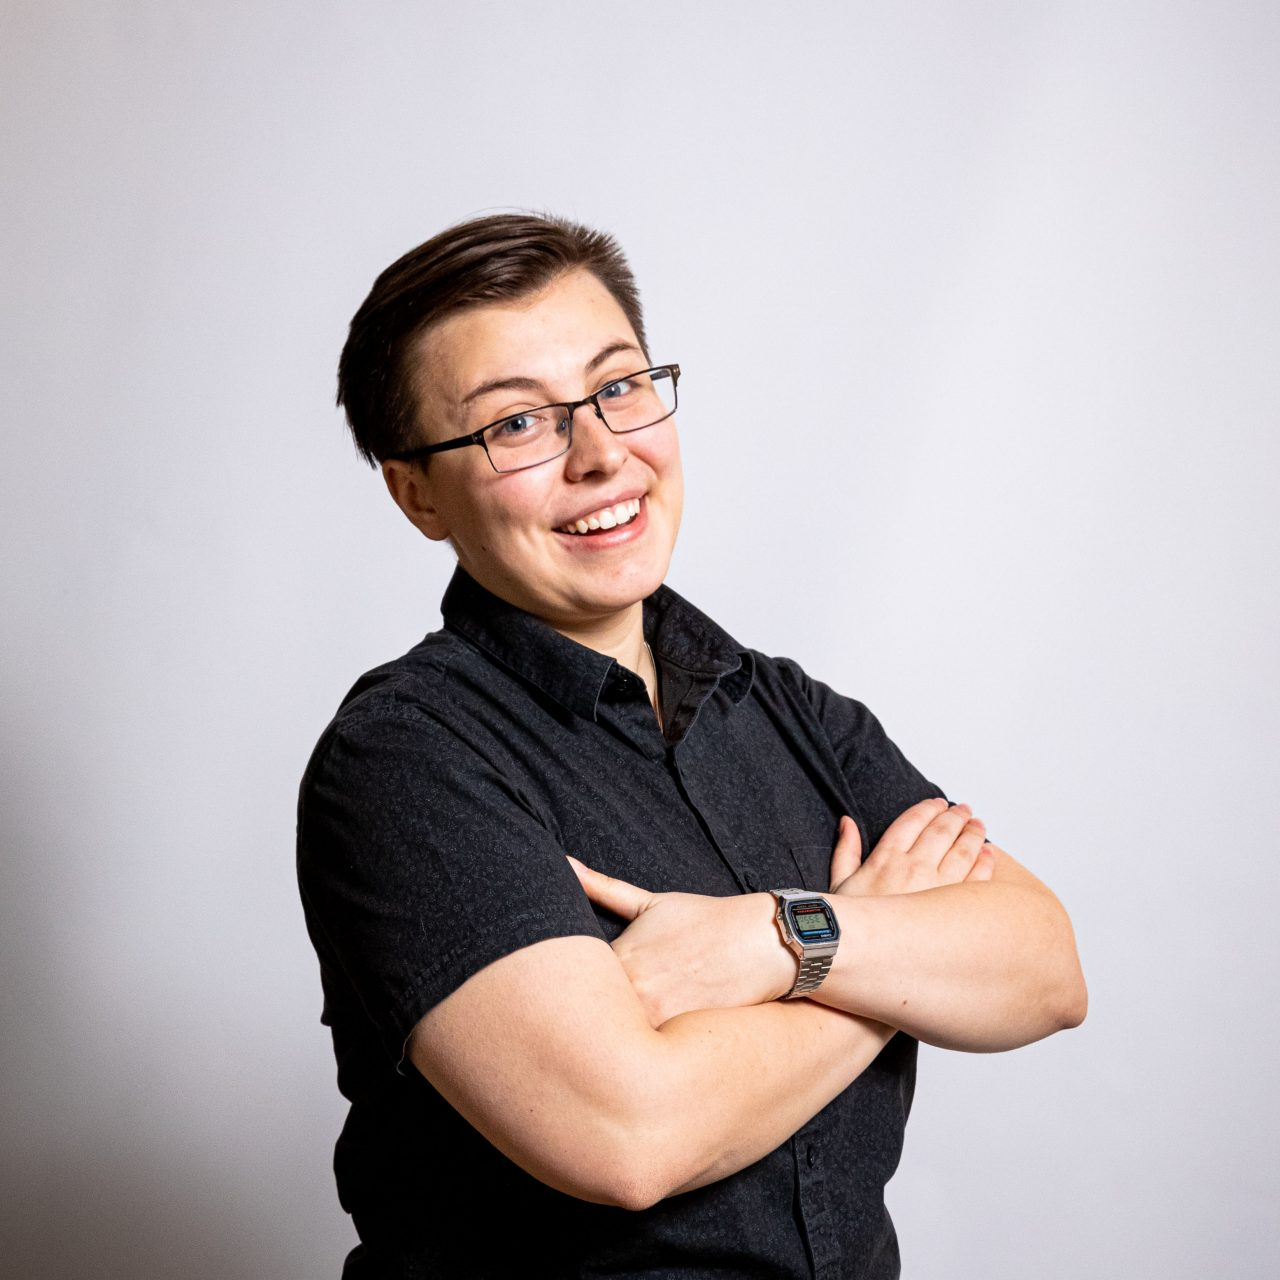 Profile picture of smiling student with arms crossed